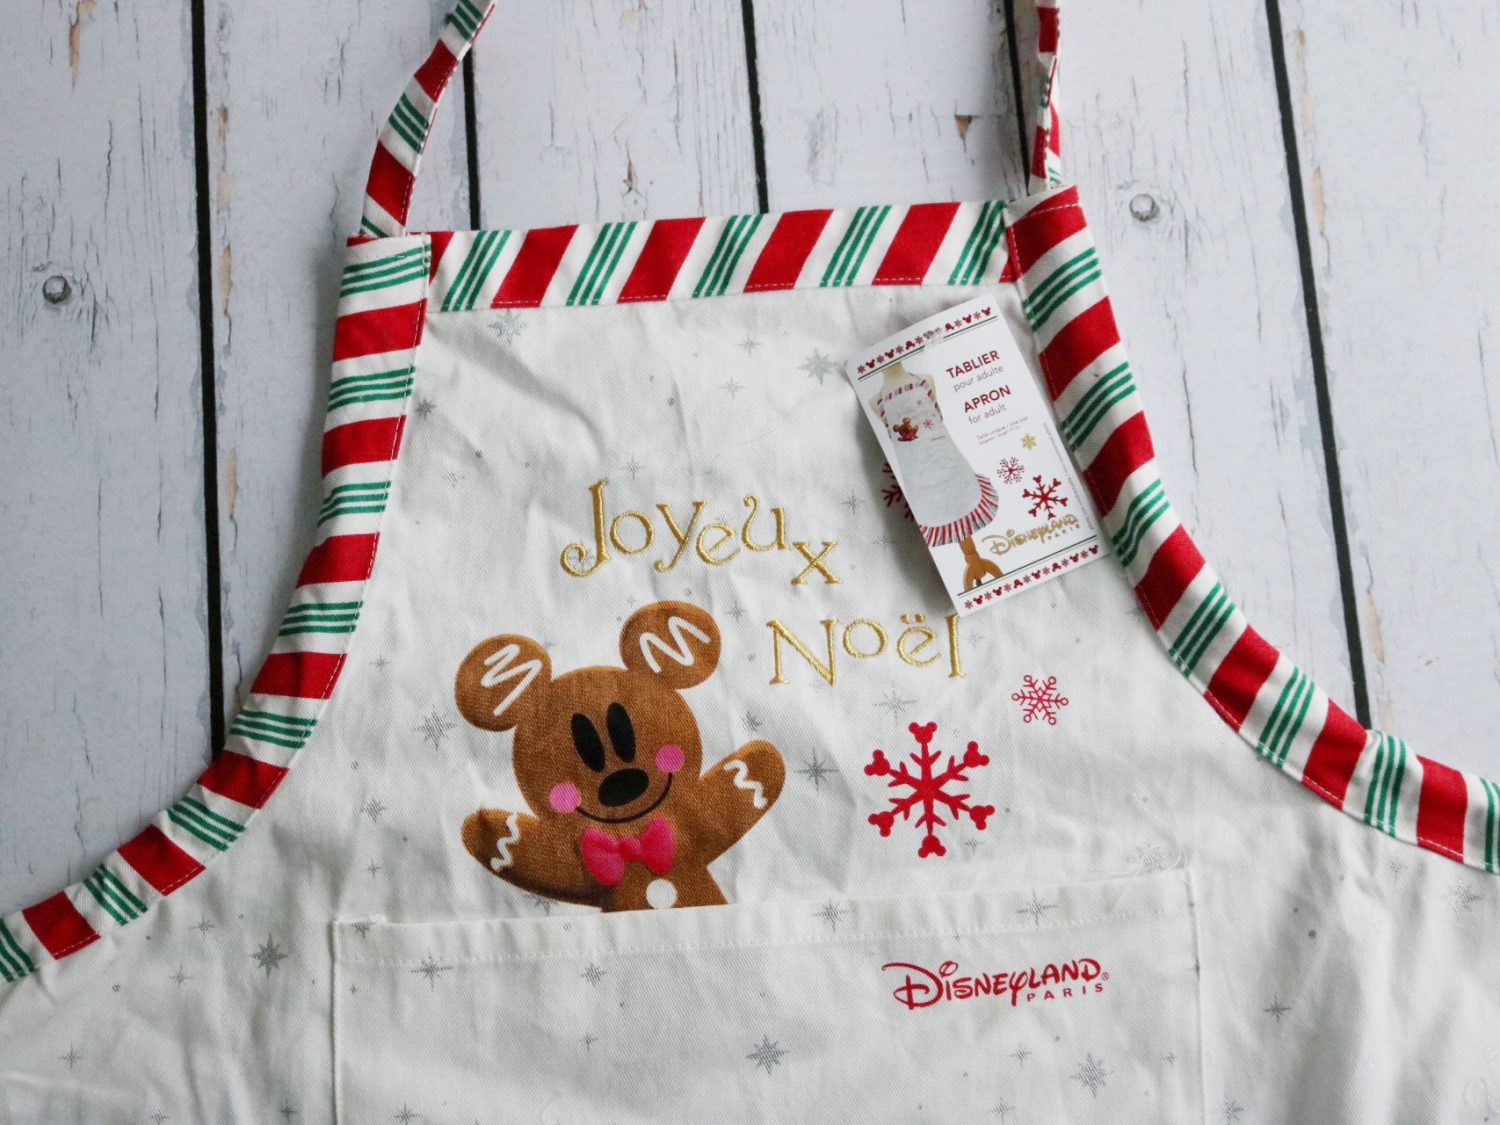 Disneyland Paris Christmas Gingerbread Apron